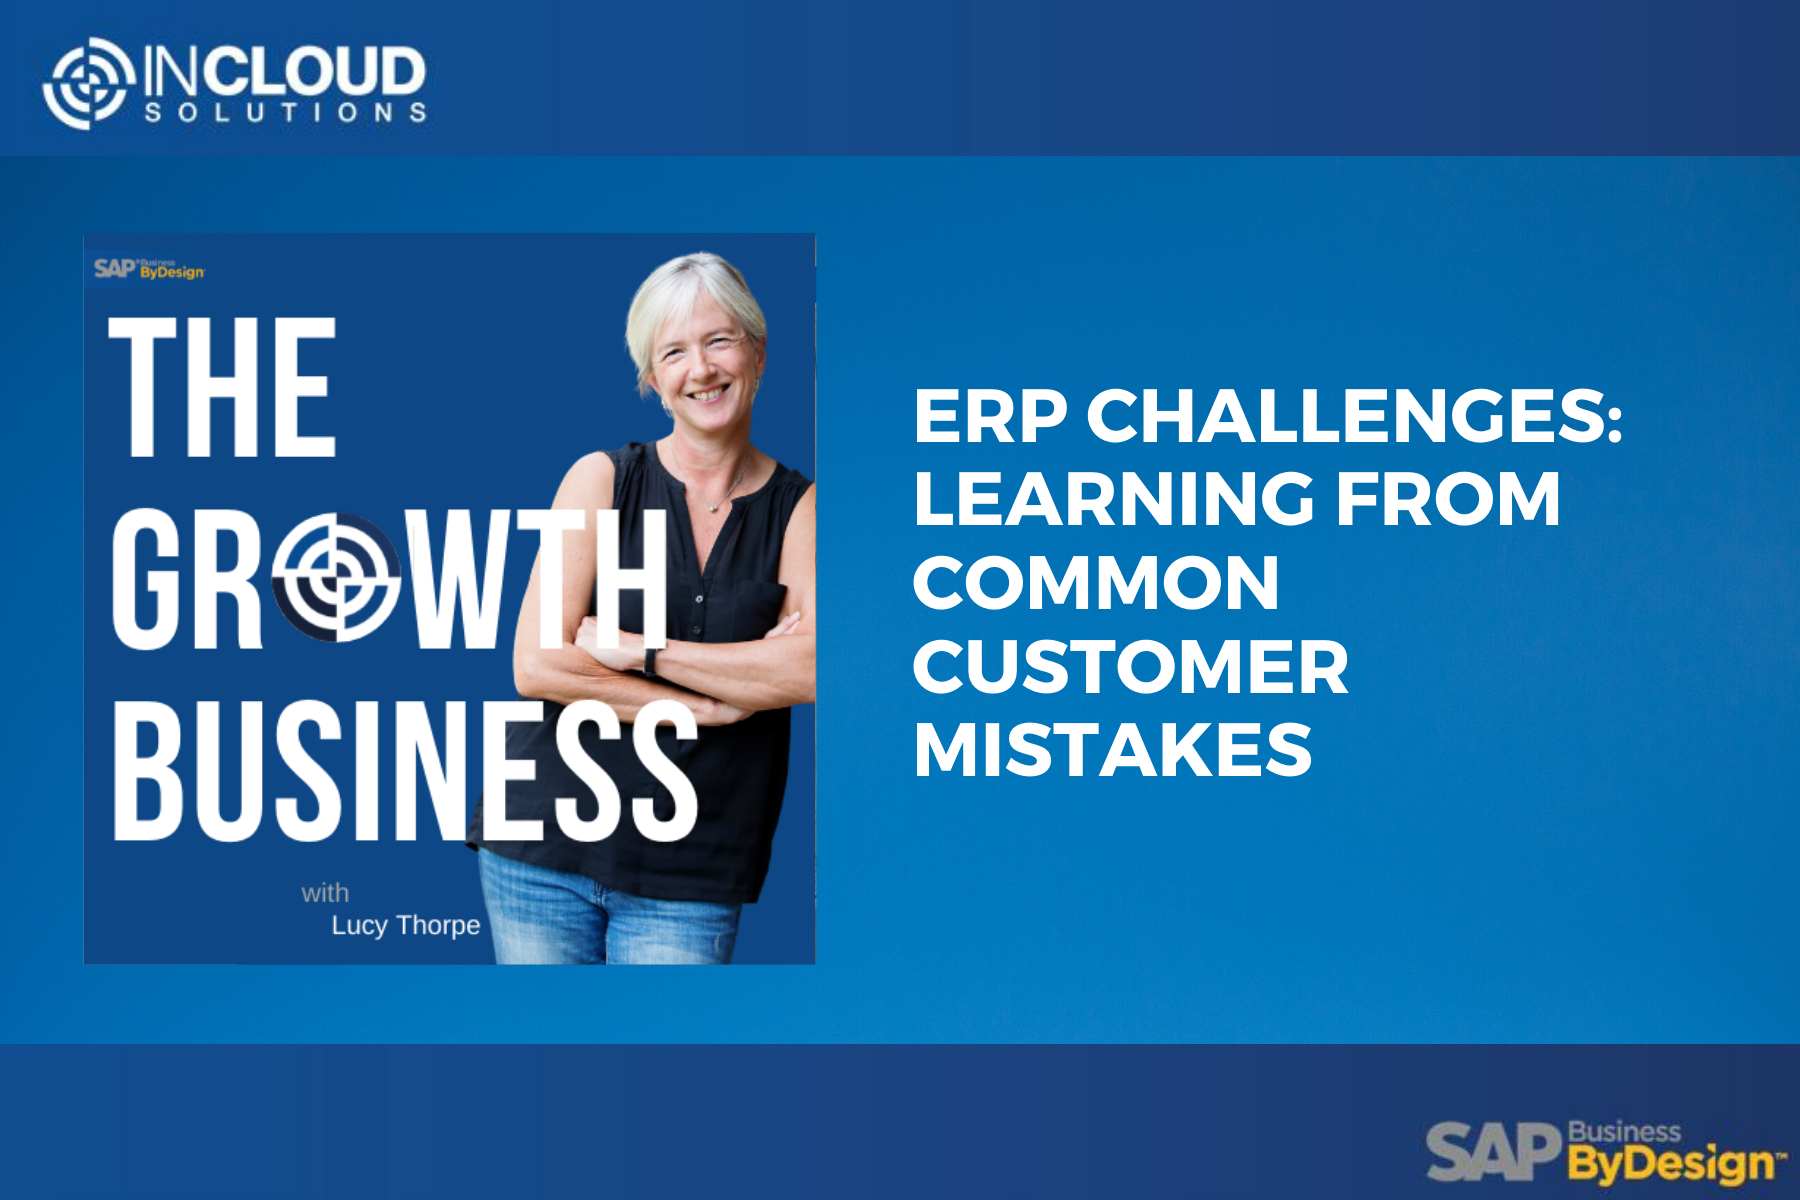 ERP challenges, learning from customer mistakes